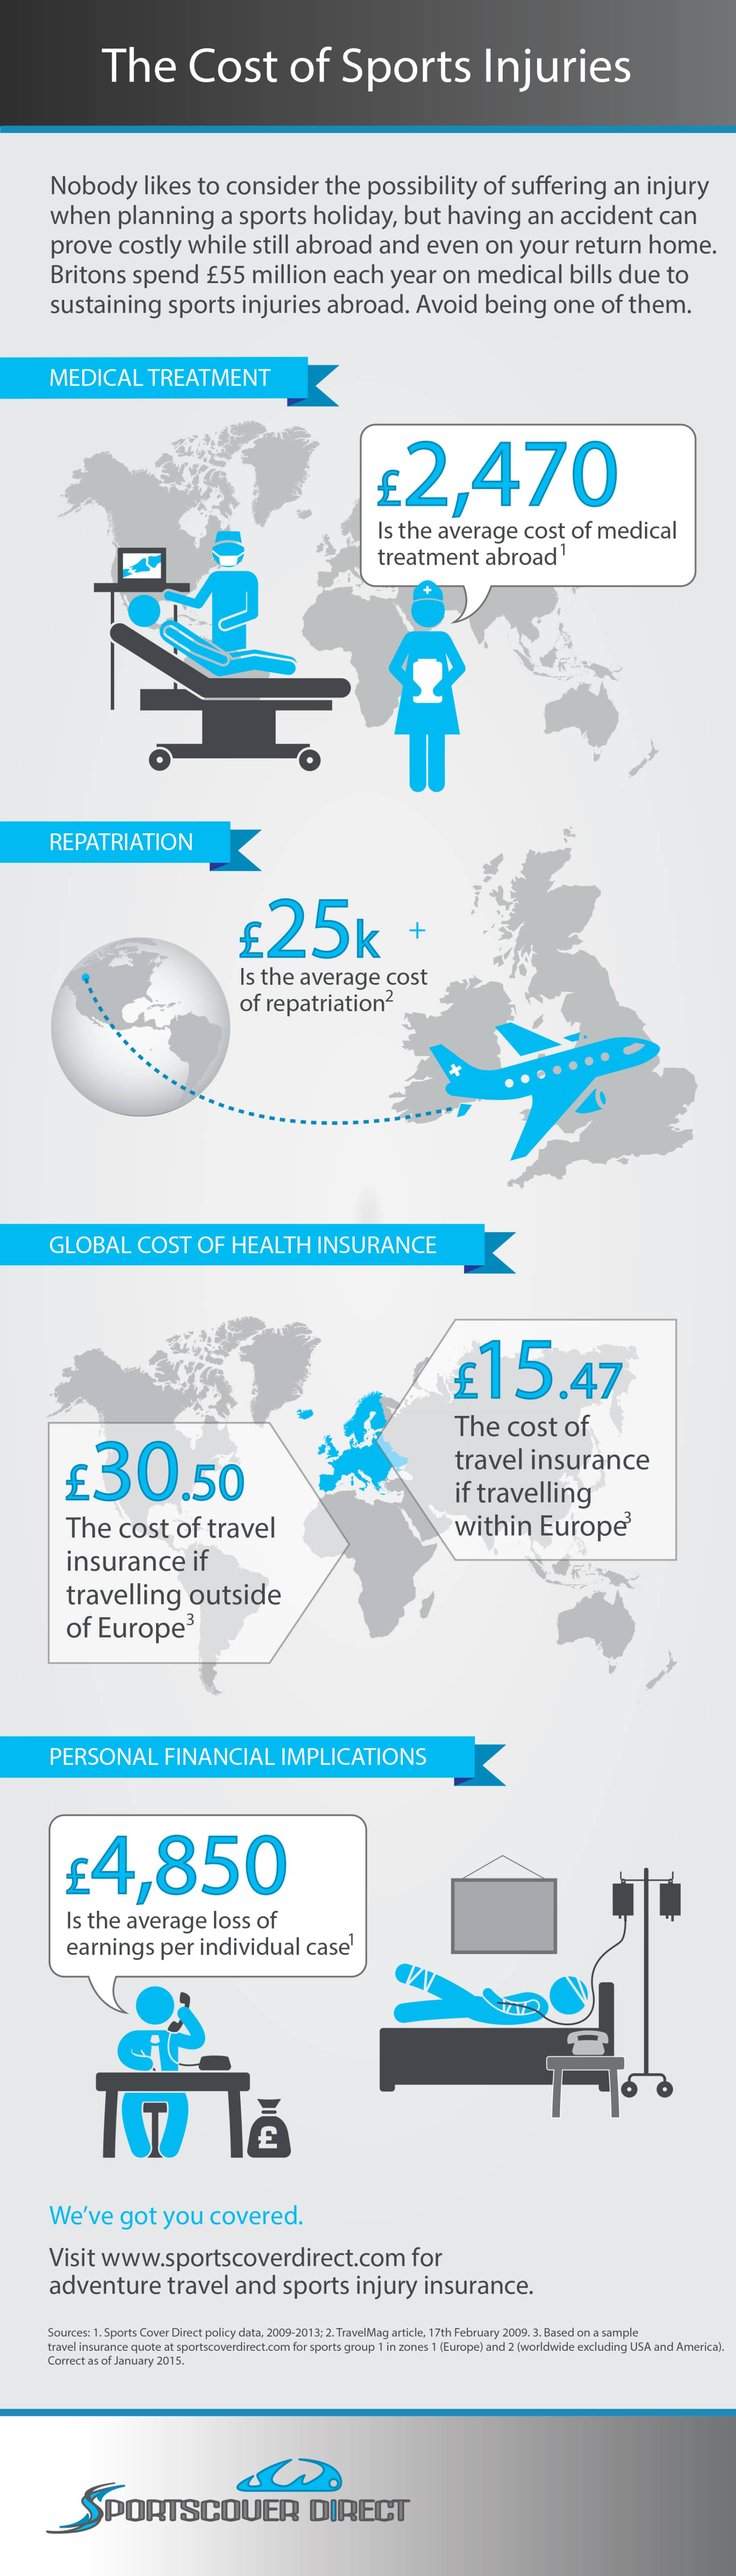 The Cost of Sports Injuries Infographic